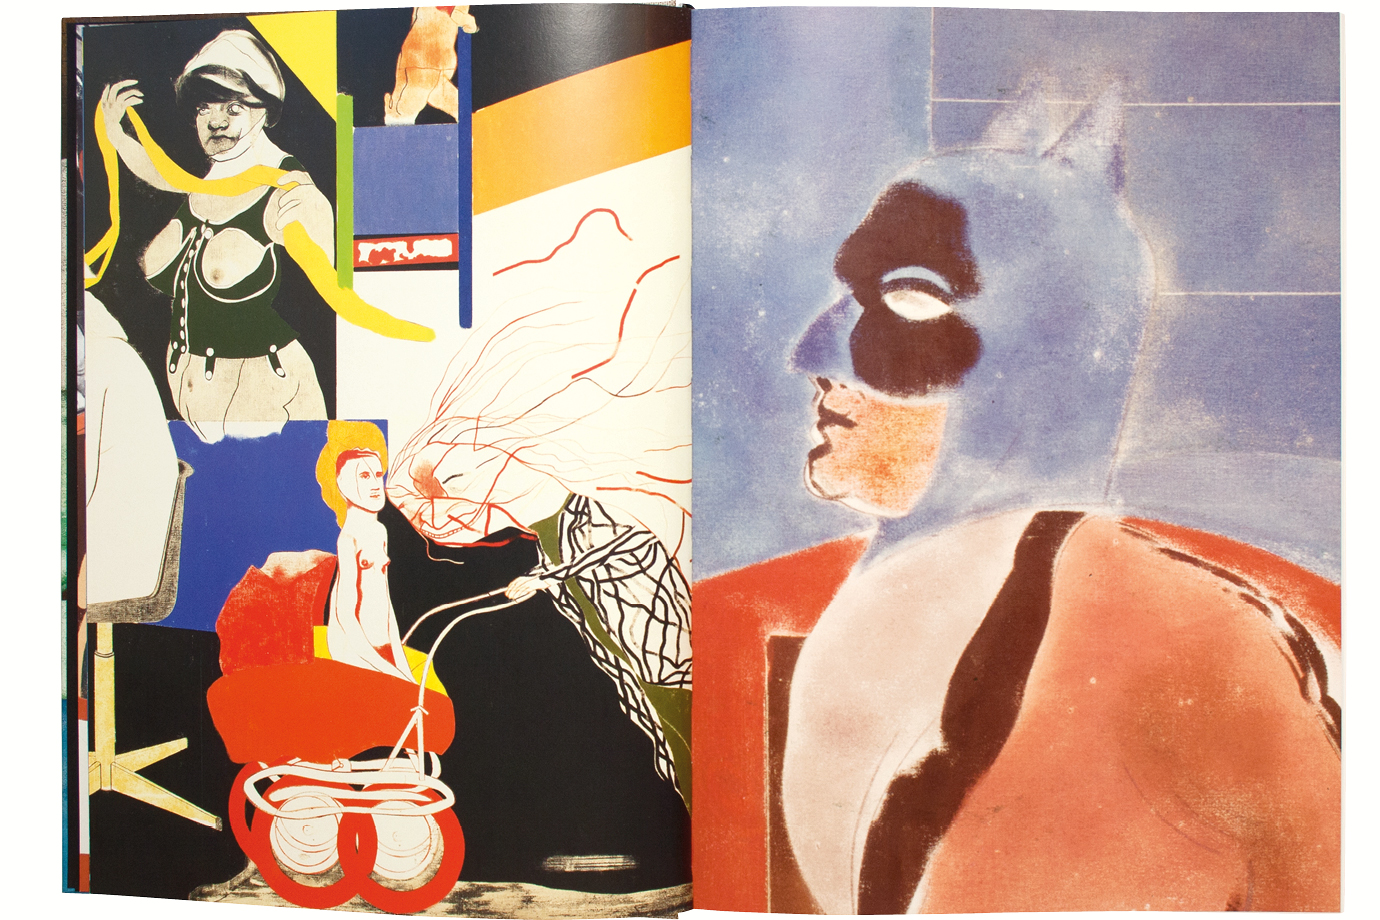 http://e-o-t.de/wordpress/wp-content/uploads/2017/07/eot-2012-Kitaj-Book-5.jpg